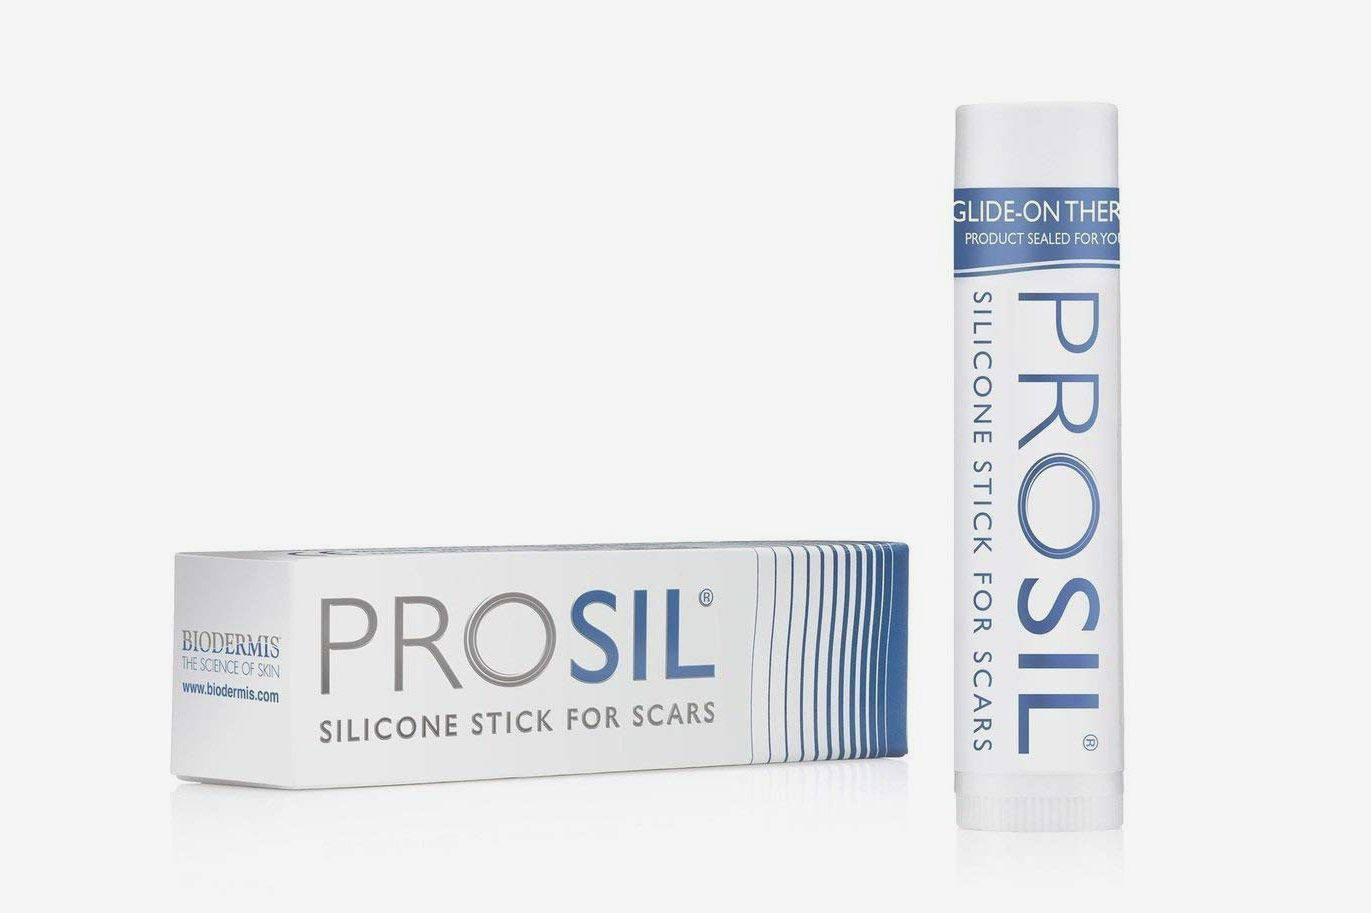 Pro-Sil Silicone Sticks for Scars